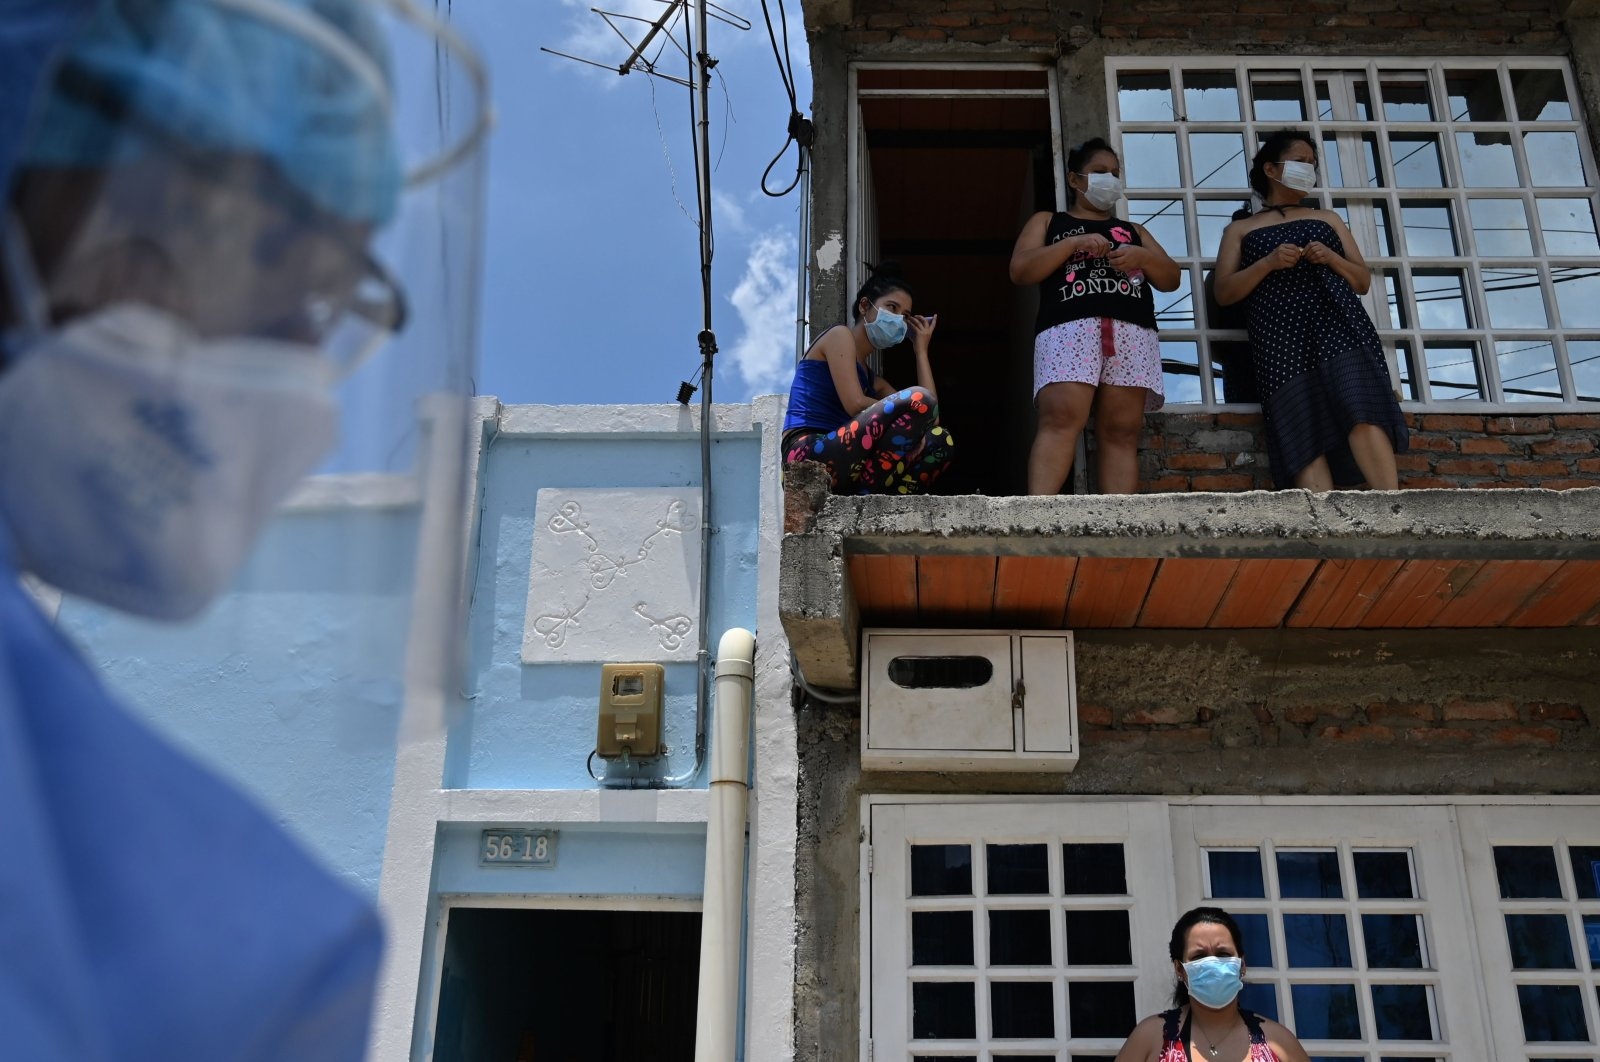 Locals look out from their house as health workers wearing biosafety suits carry out a checkup for the coronavirus at Nueva Floresta neighborhood in Cali, Colombia, on April 20, 2020.  (AFP)